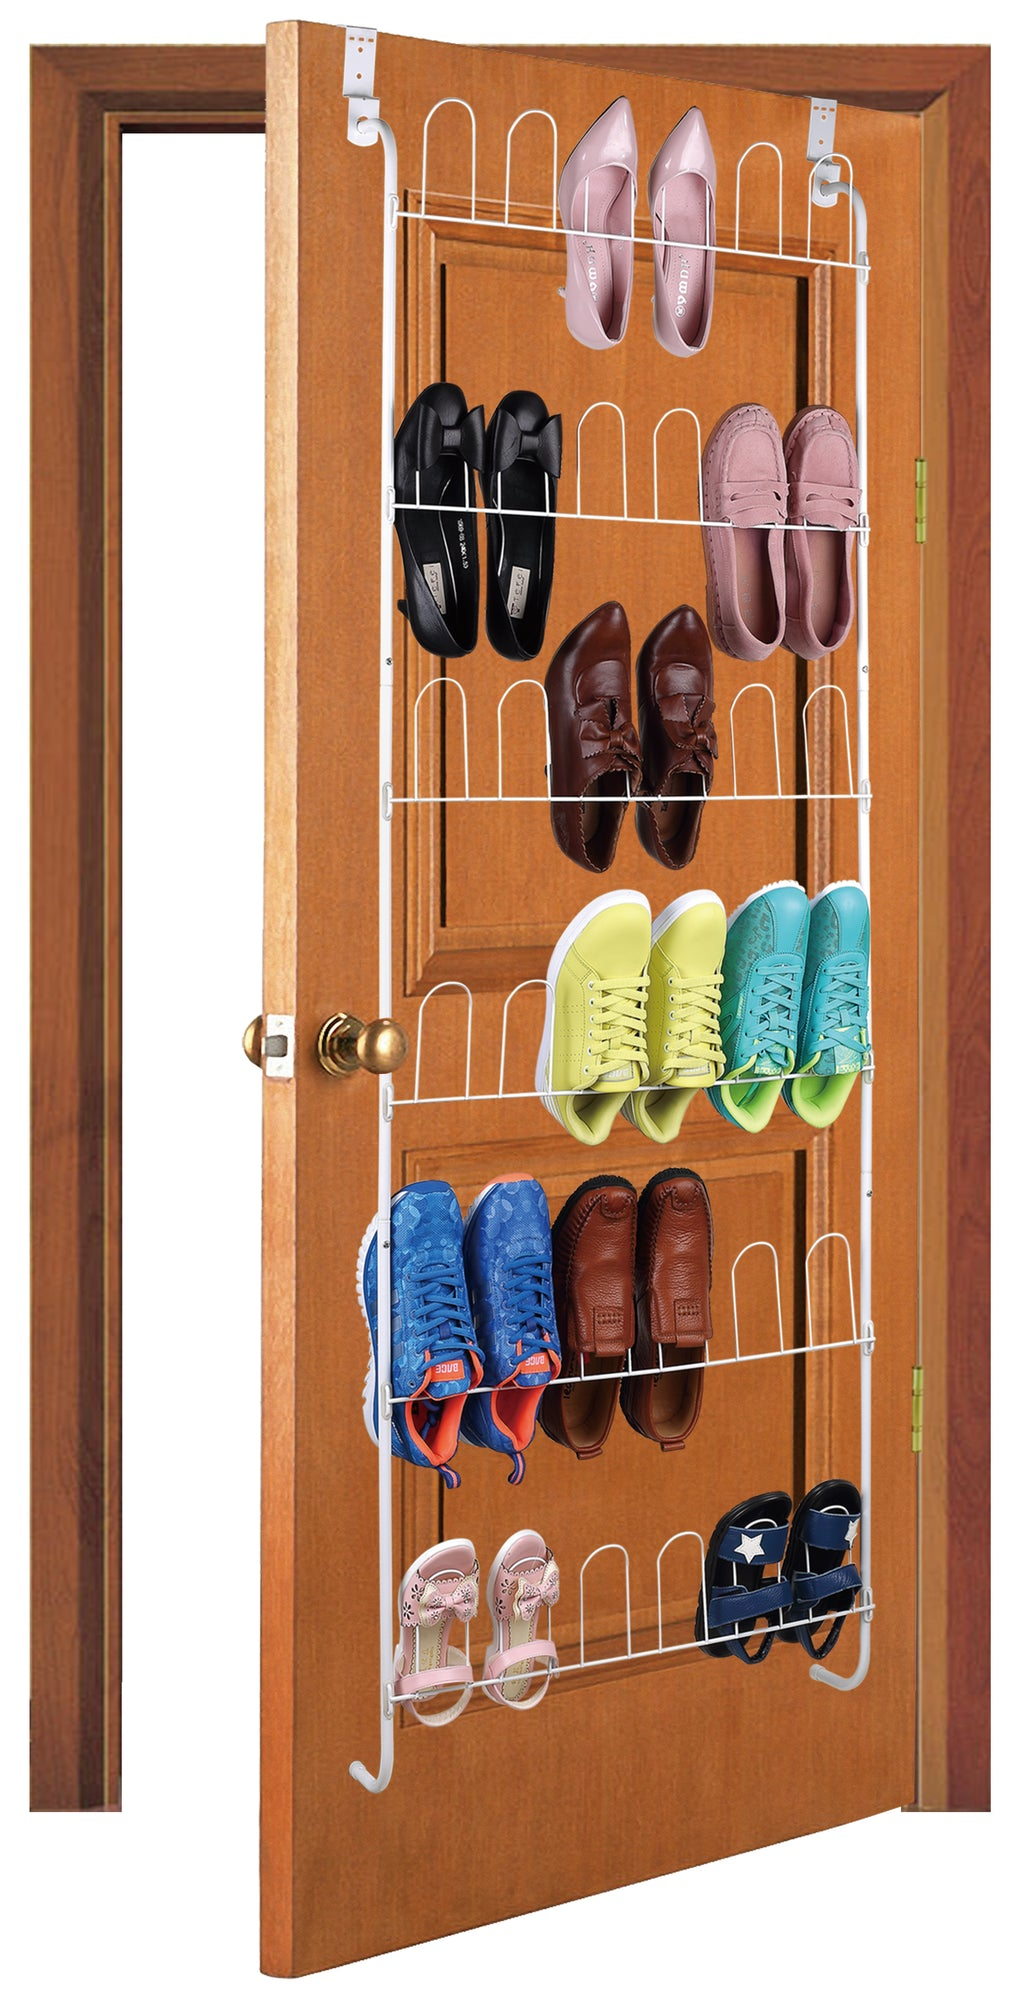 J&V TEXTILES Stackable Shoe Storage and Organizer Racks 4-Tier 6-Tier Over The Door or Stackable (Over The Door Rack) - Shoe Storage - J&V Textiles Premiere Home Goods